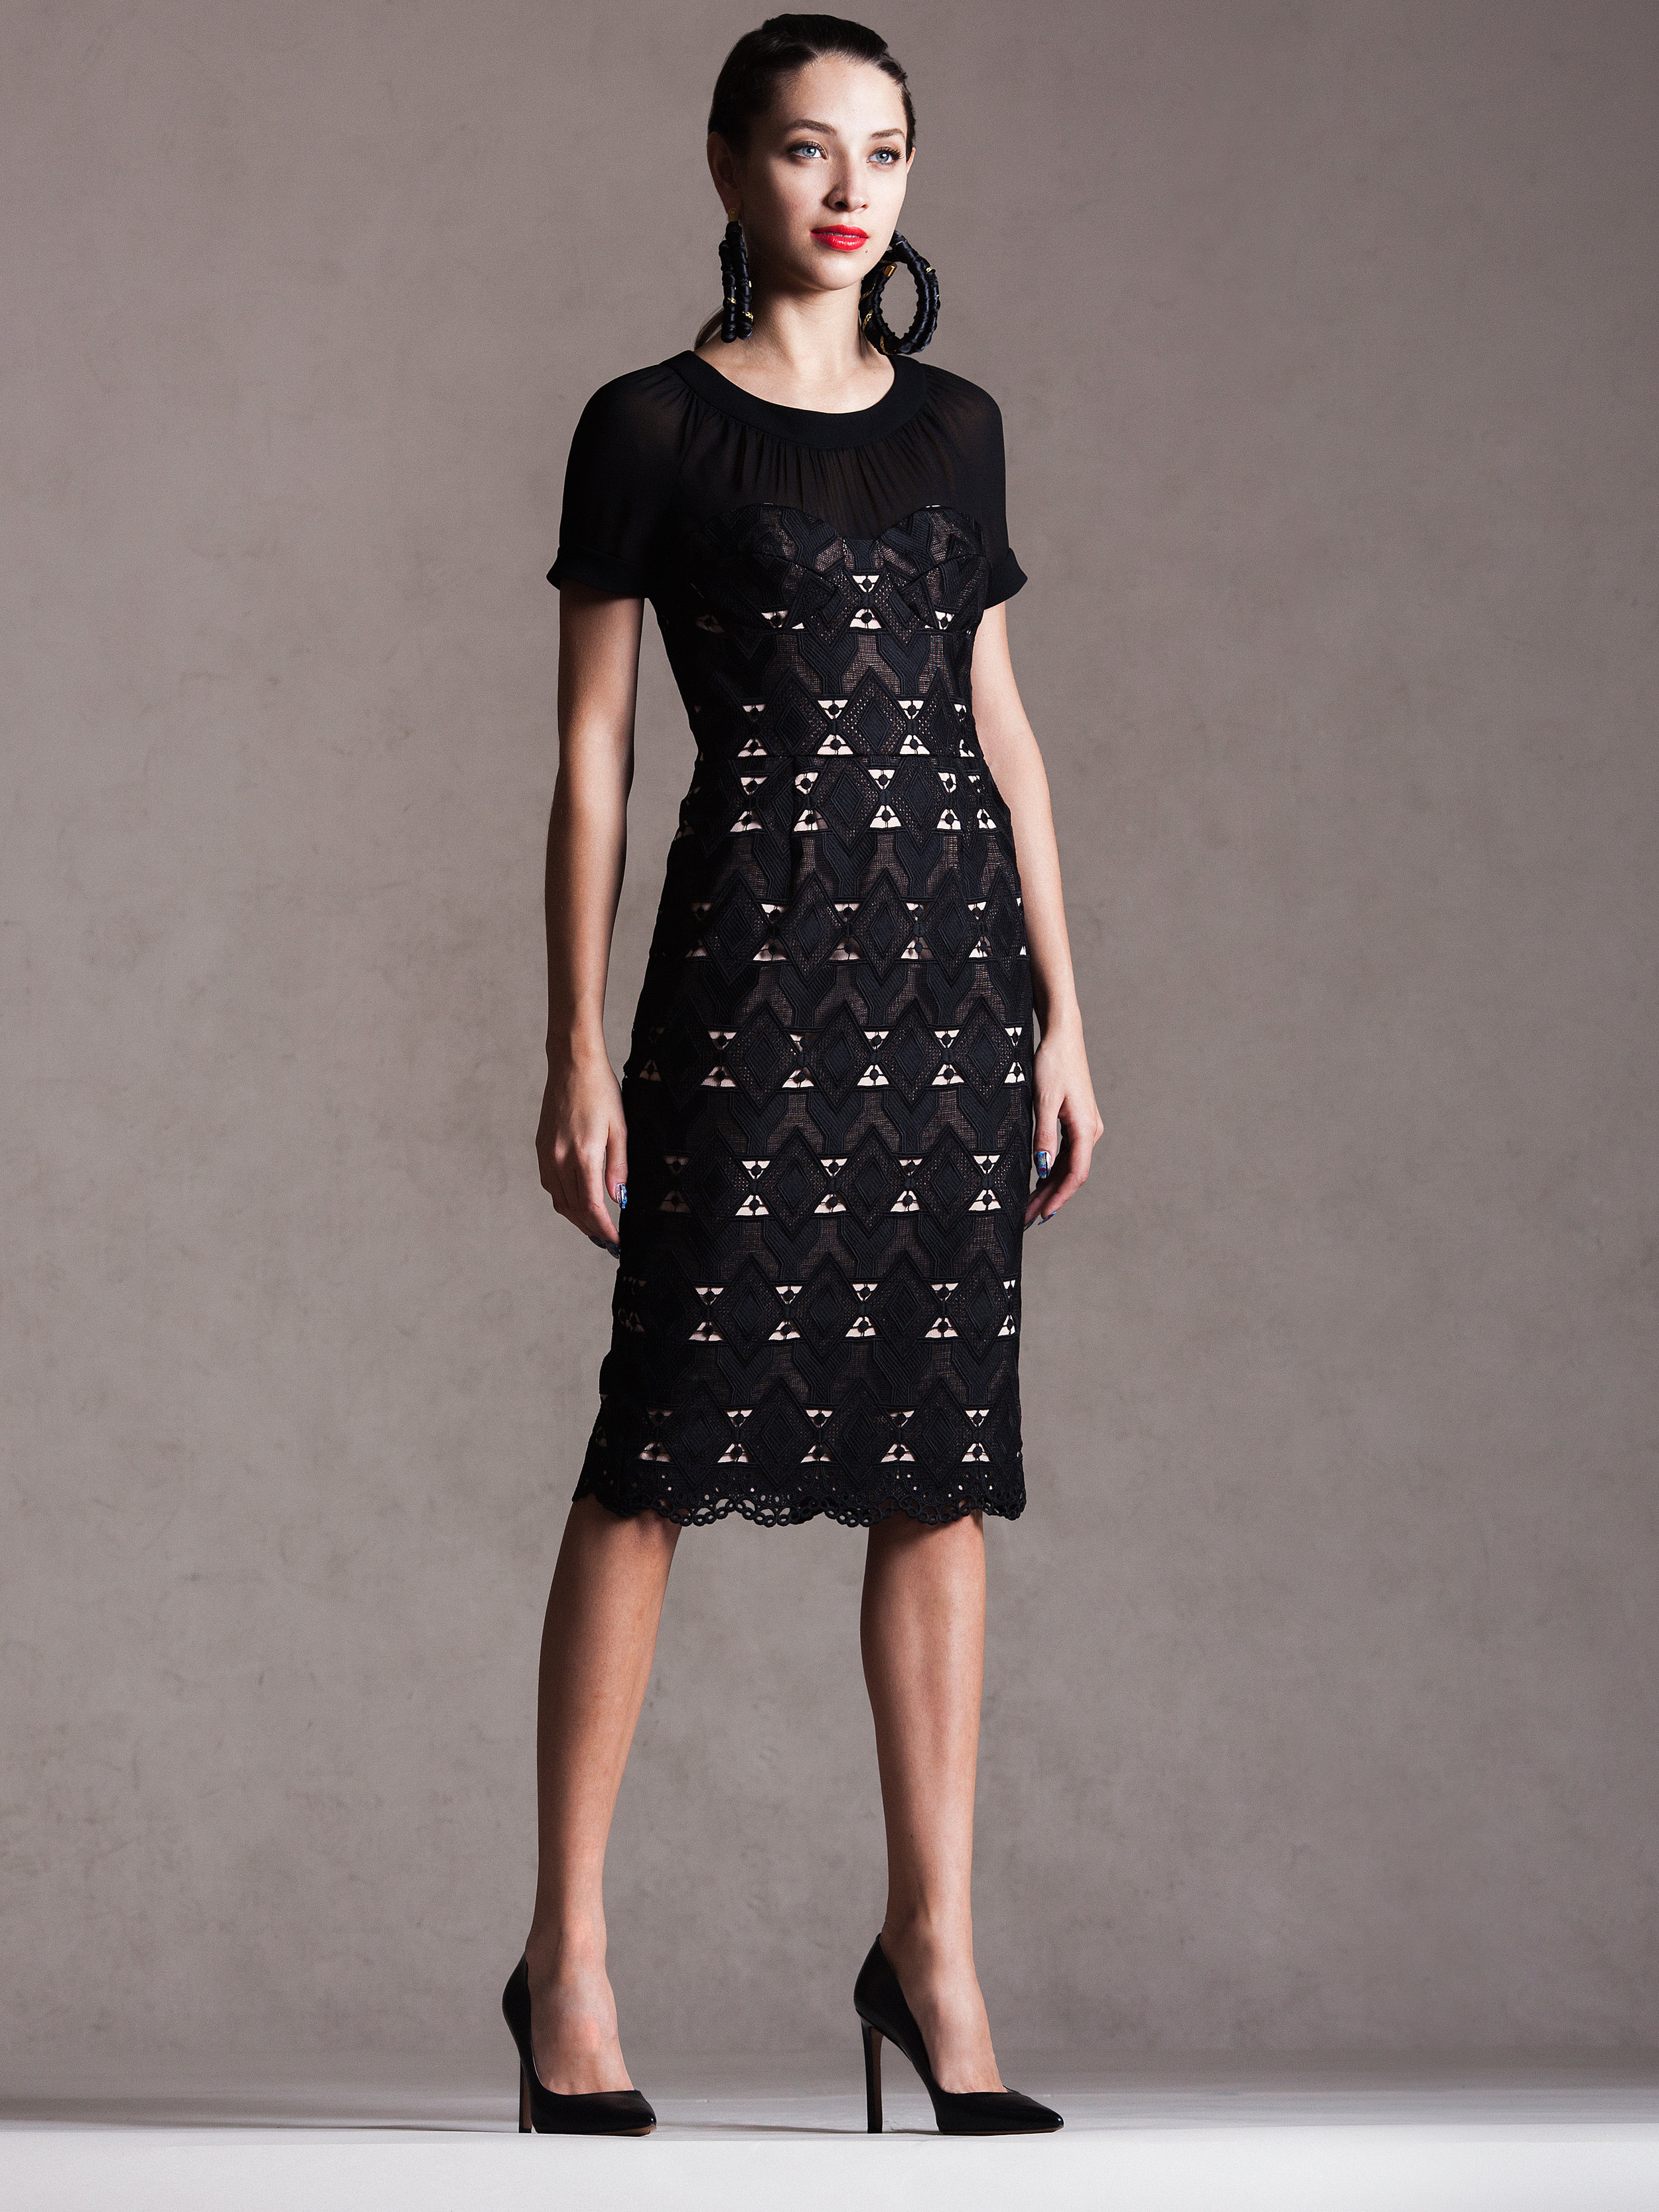 Lucian-Matis-Lookbook-20150204-025c.jpg